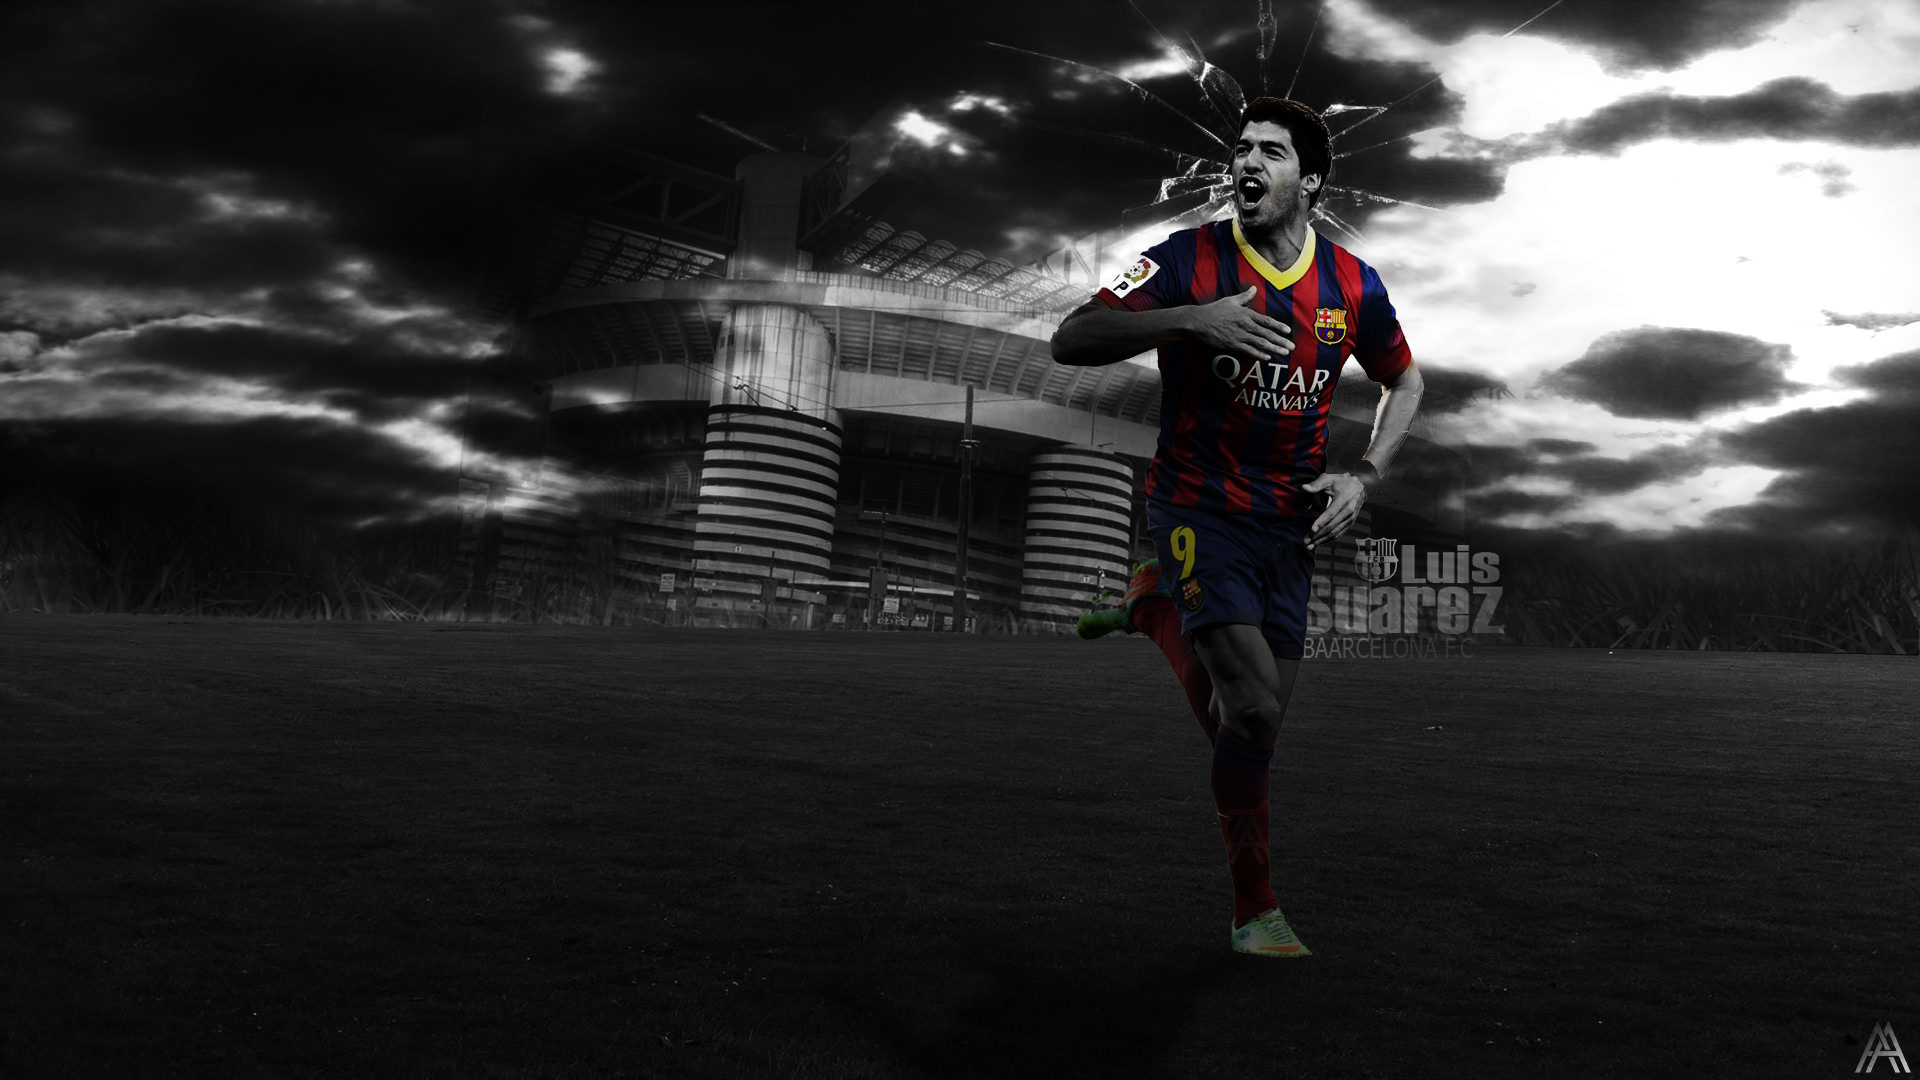 Luis Suarez FC Barcelona Wallpaper   Football Wallpapers HD 1920x1080